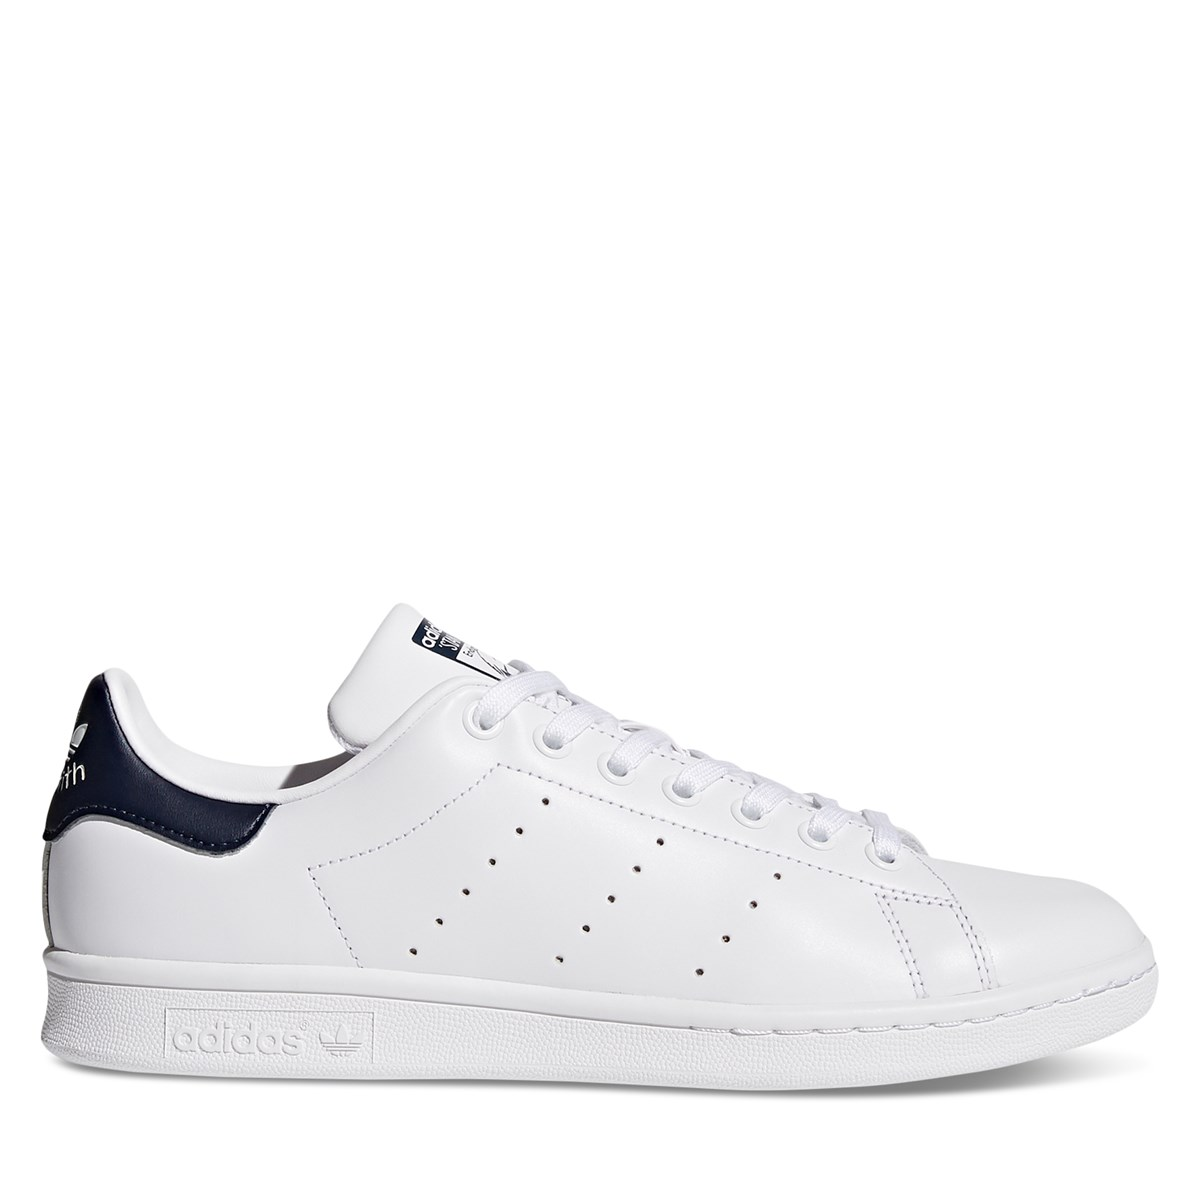 Hombre Stan Smith Sneakers Little in Blanco | Little Sneakers Burgundy 5ab793